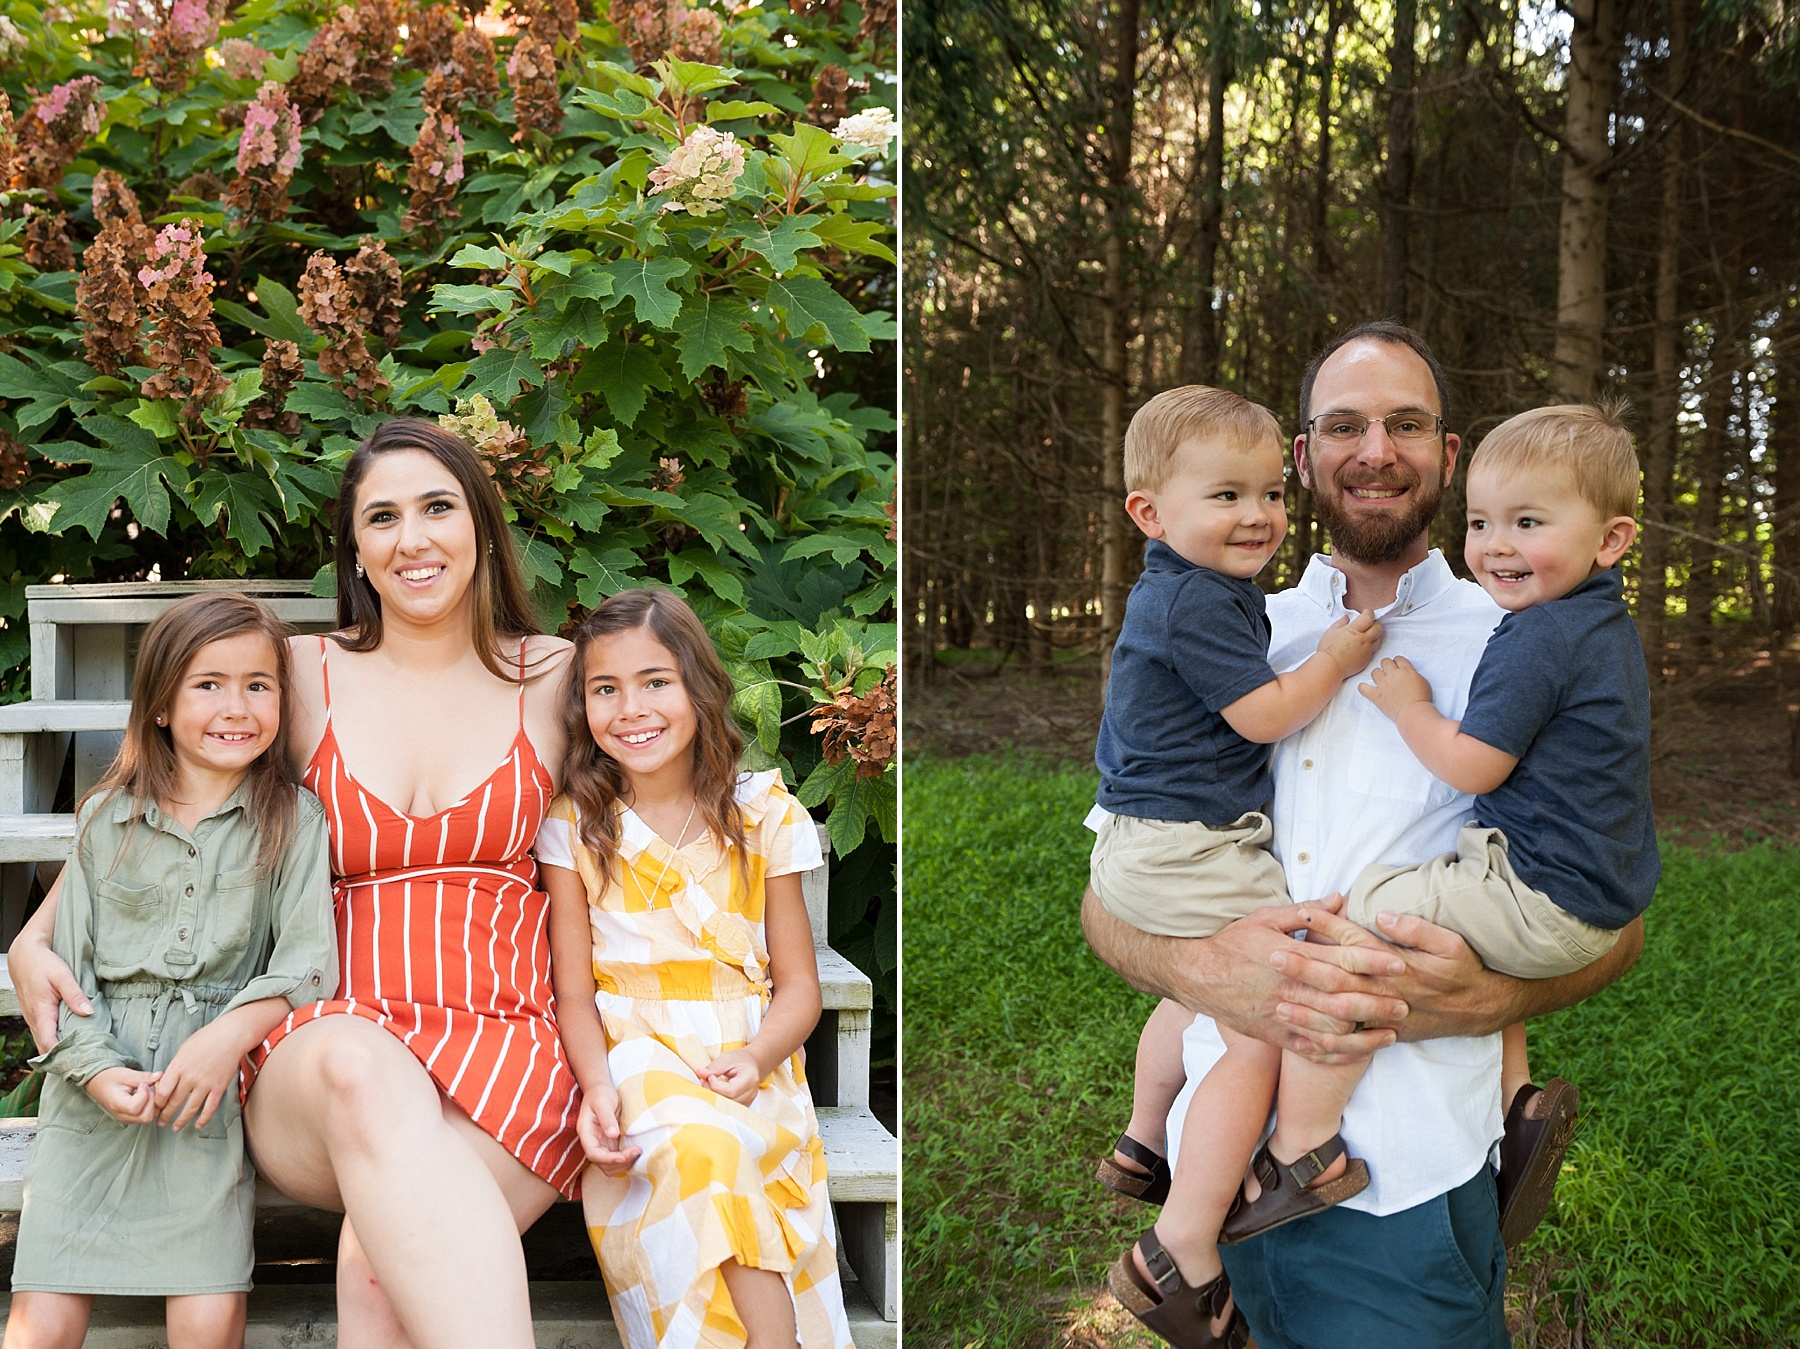 Wendy Zook Photography | Frederick MD Family photographer, Maryland family photographer, Frederick family photographer, family photography, family portraits, family session, MD family photos, Maryland family session, Lake Linganore family portraits